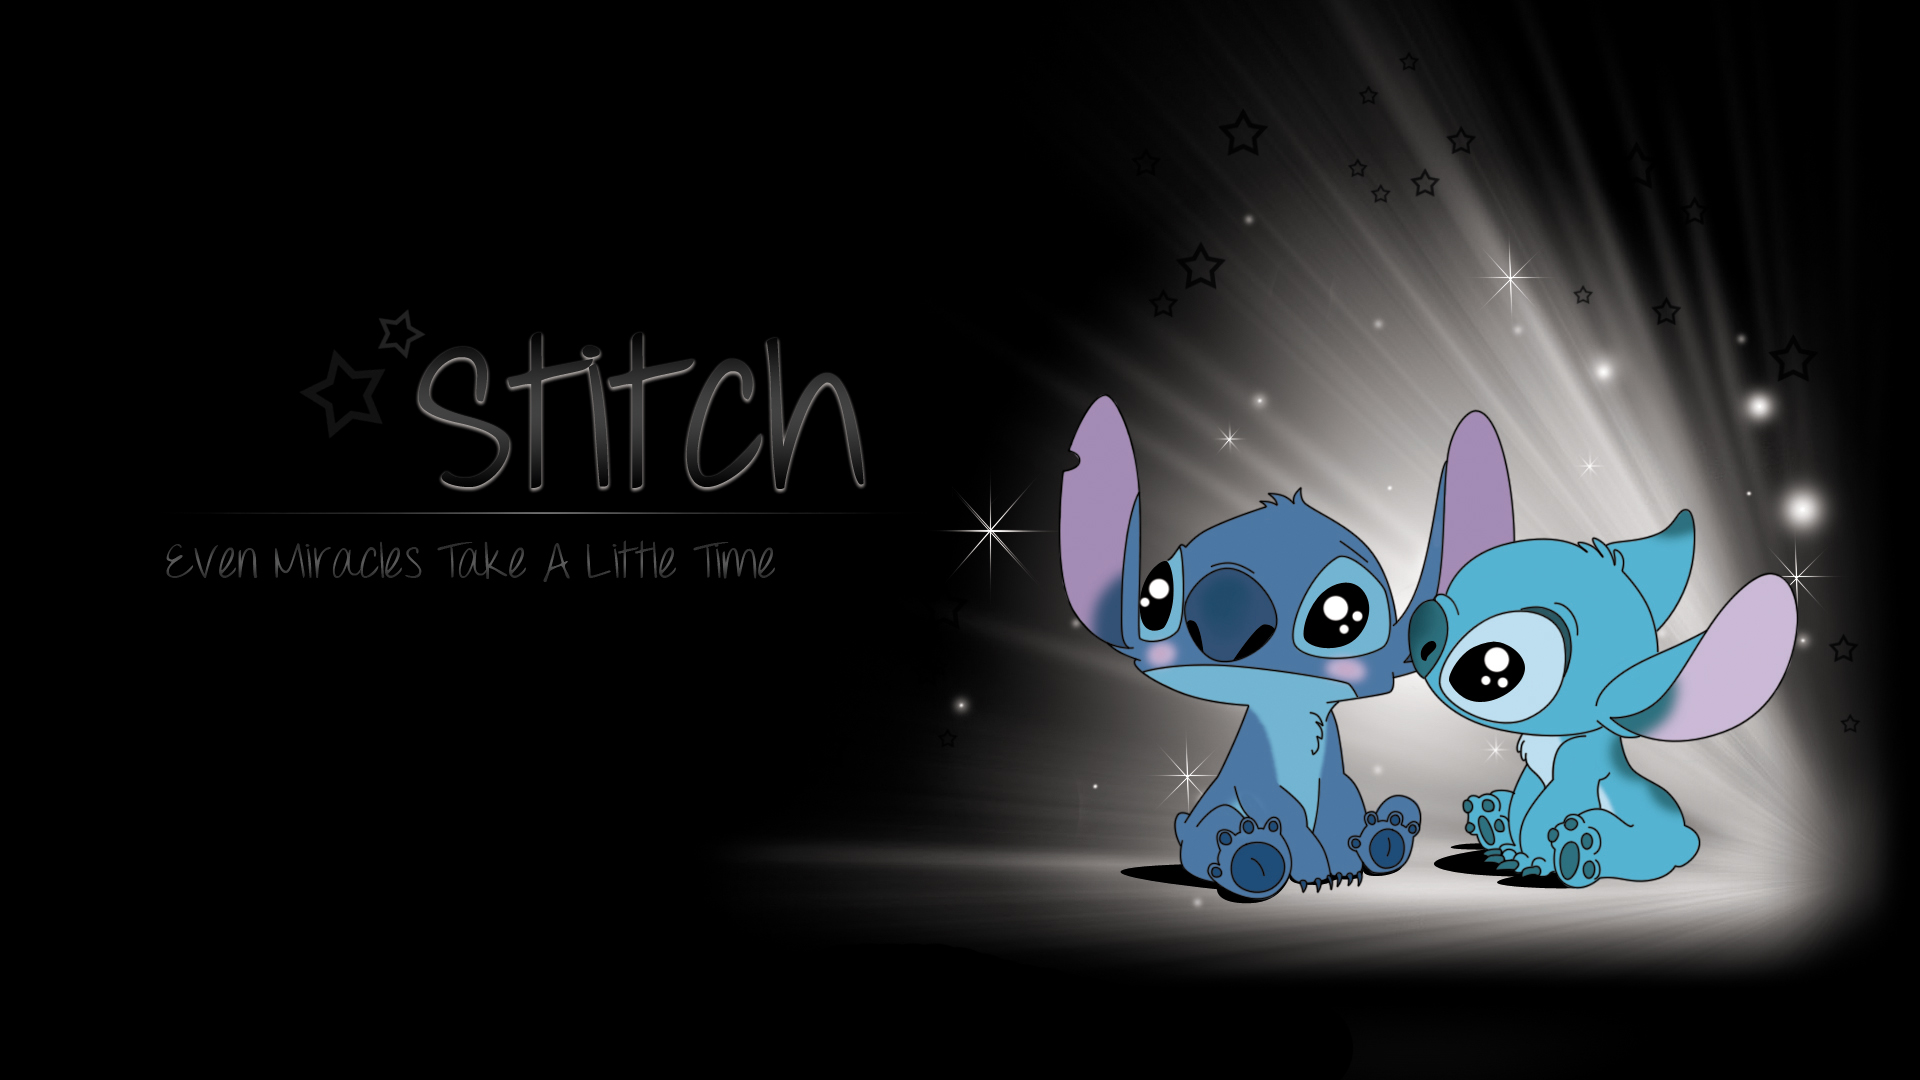 Free Download Sad Stitch Wallpaper Stitch Wallpaper